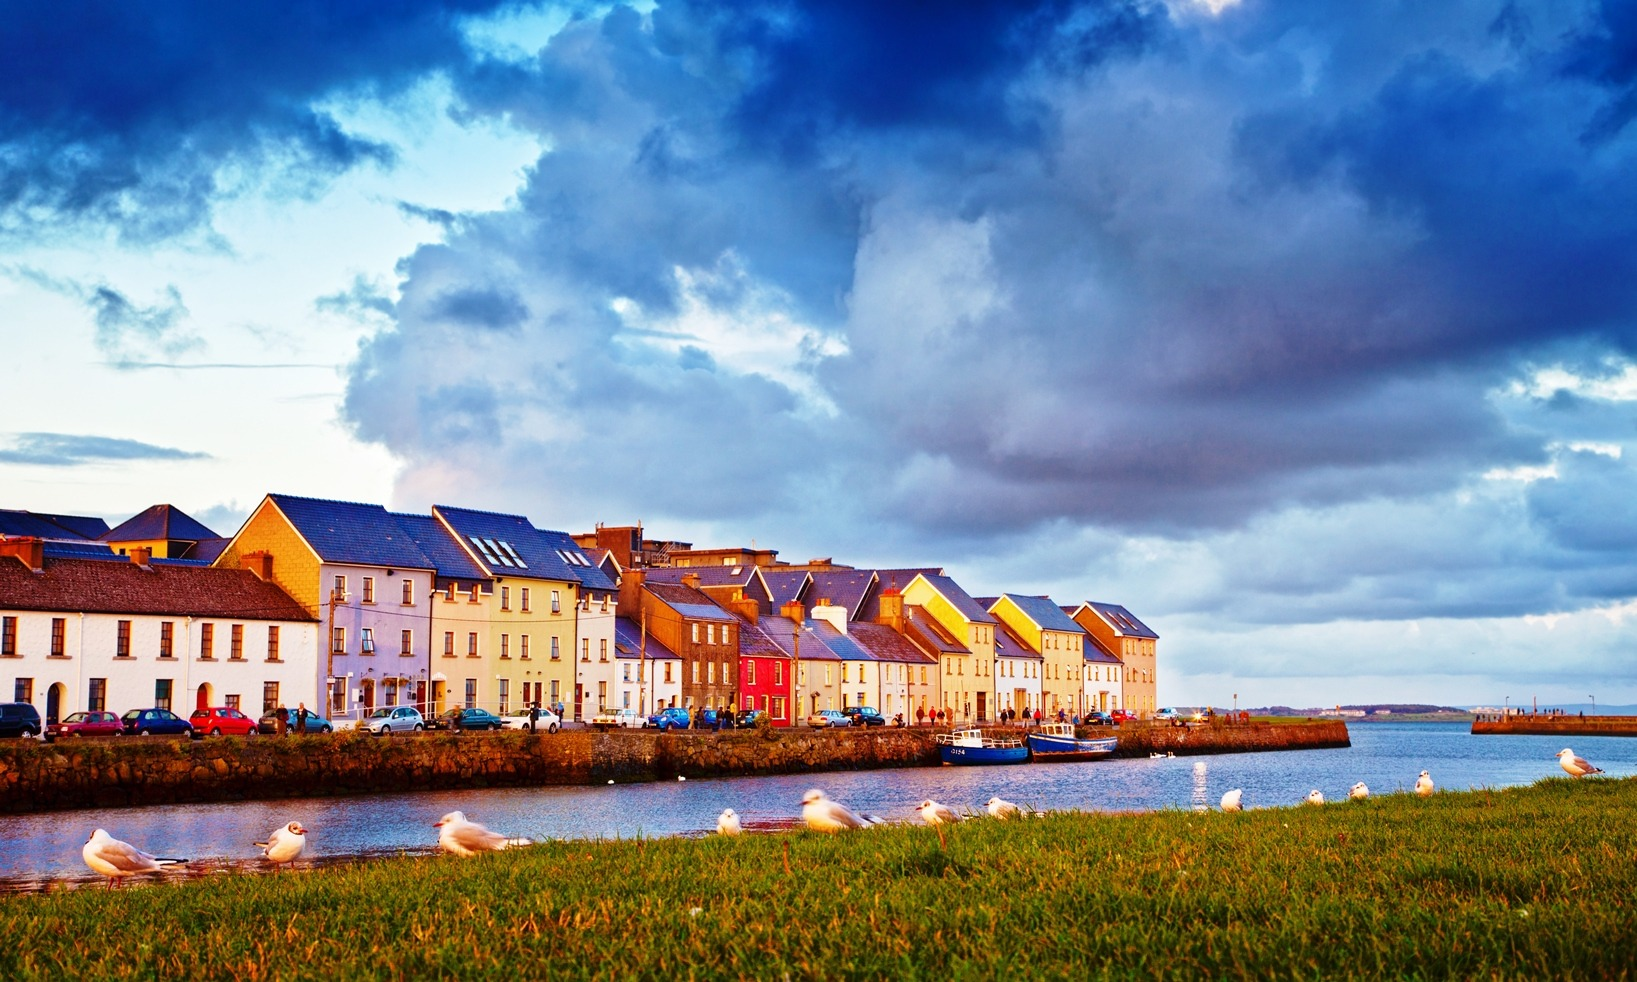 10 Best Arklow Hotels, Ireland (From $57) - kurikku.co.uk